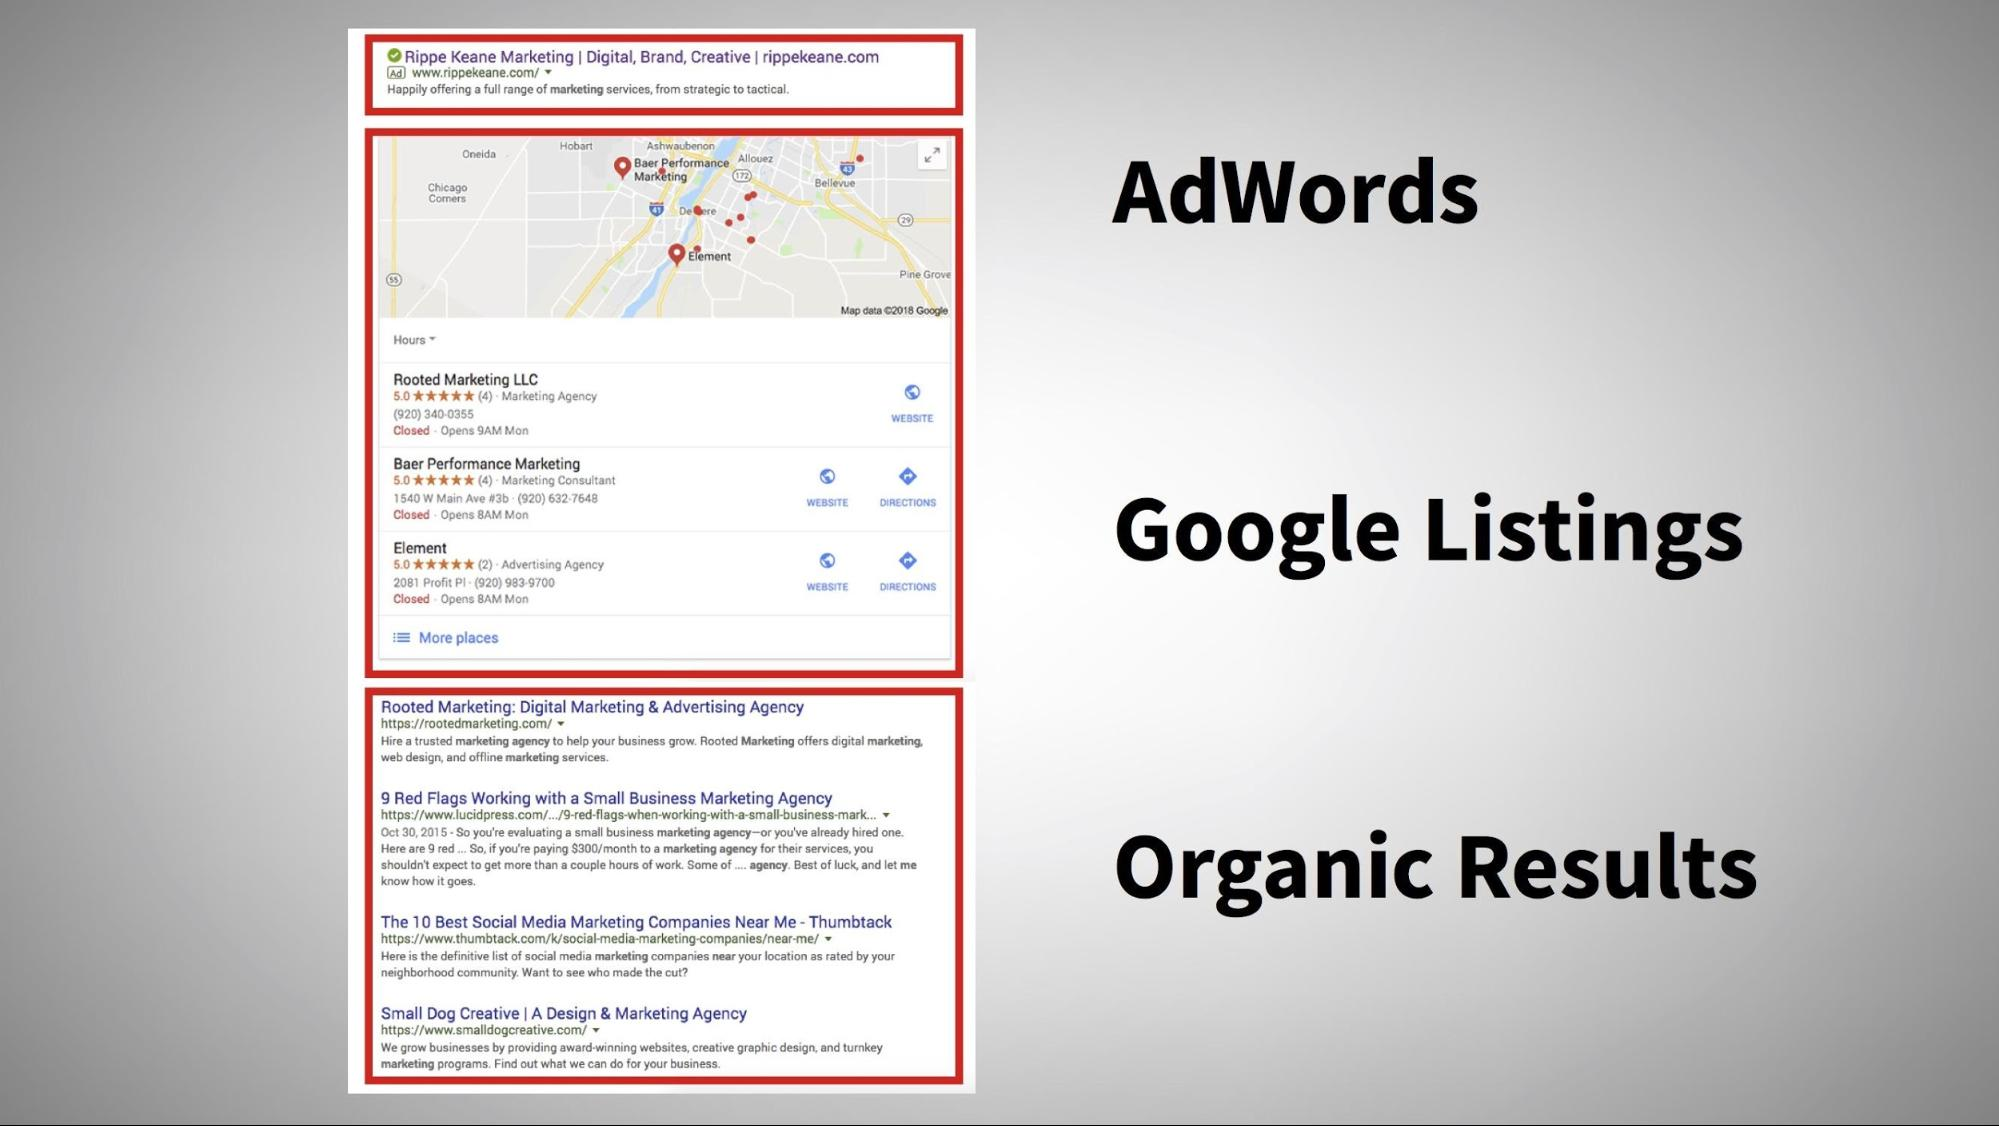 Anatomy of a Google Search Engine Results Page